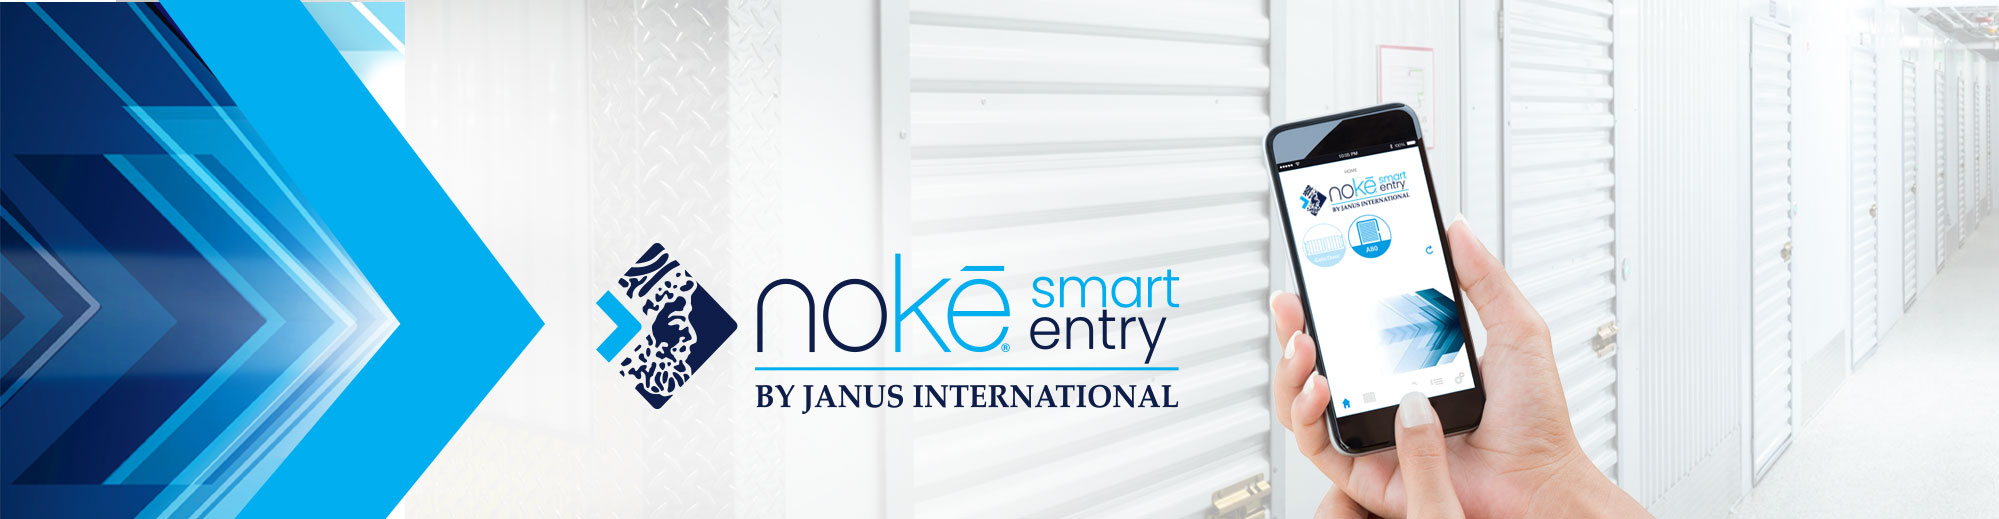 Noke Smart Entry system with self storage units in background